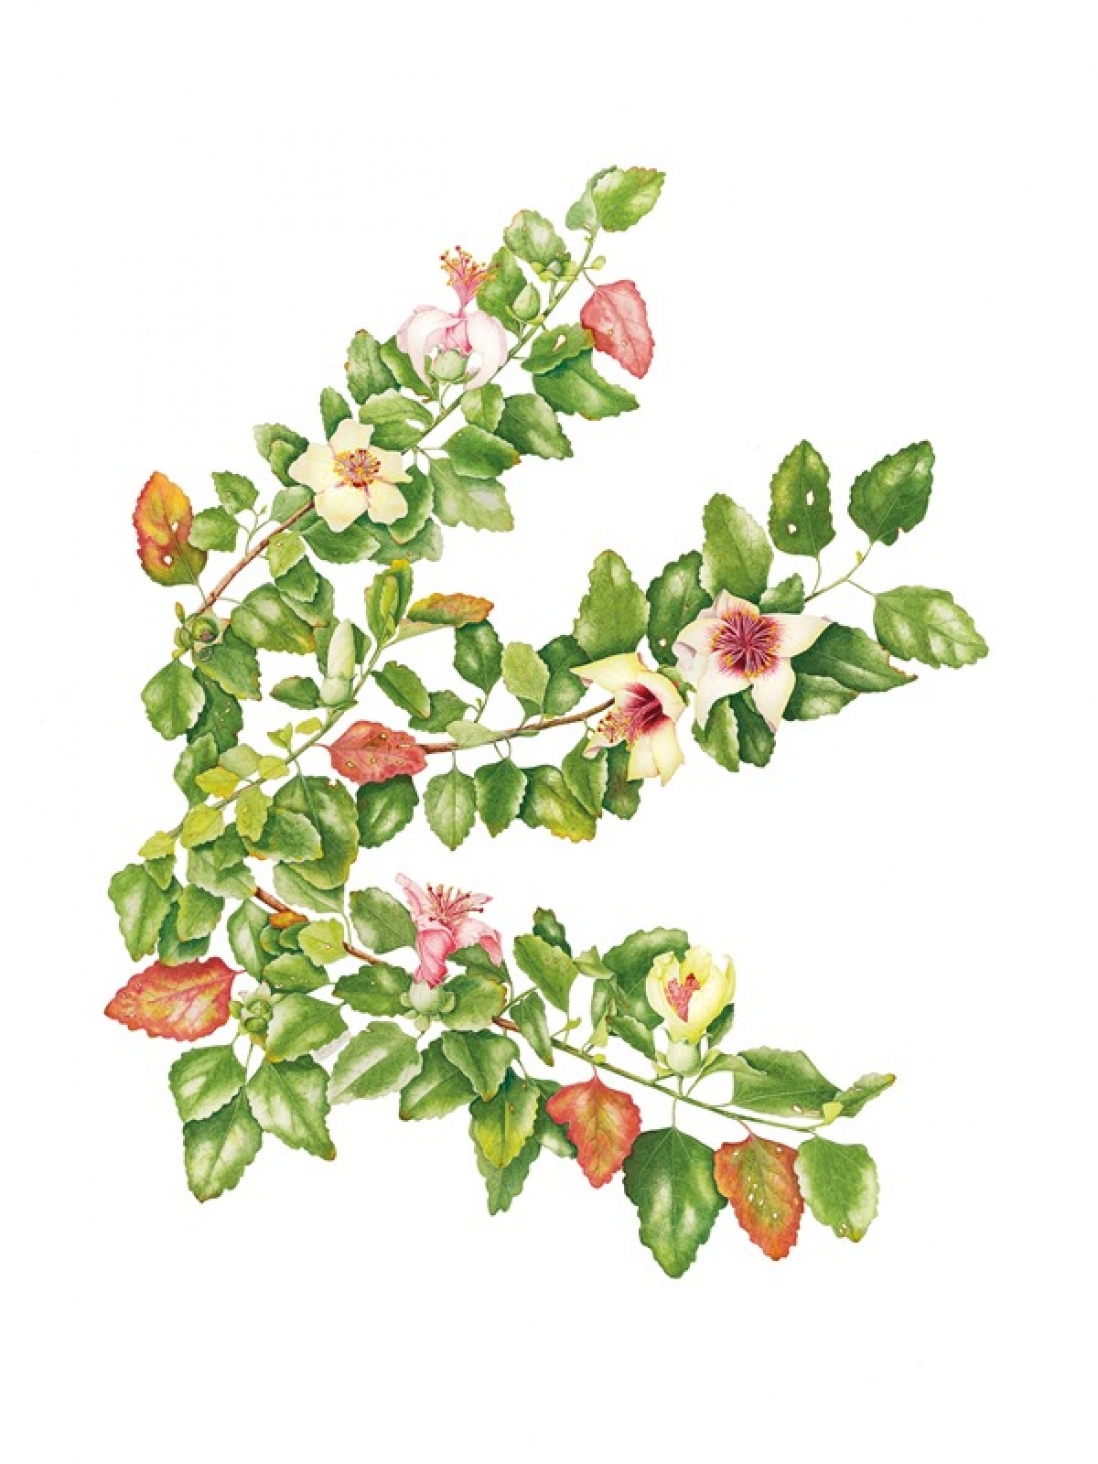 Botanical illustration of Hibiscus insularis